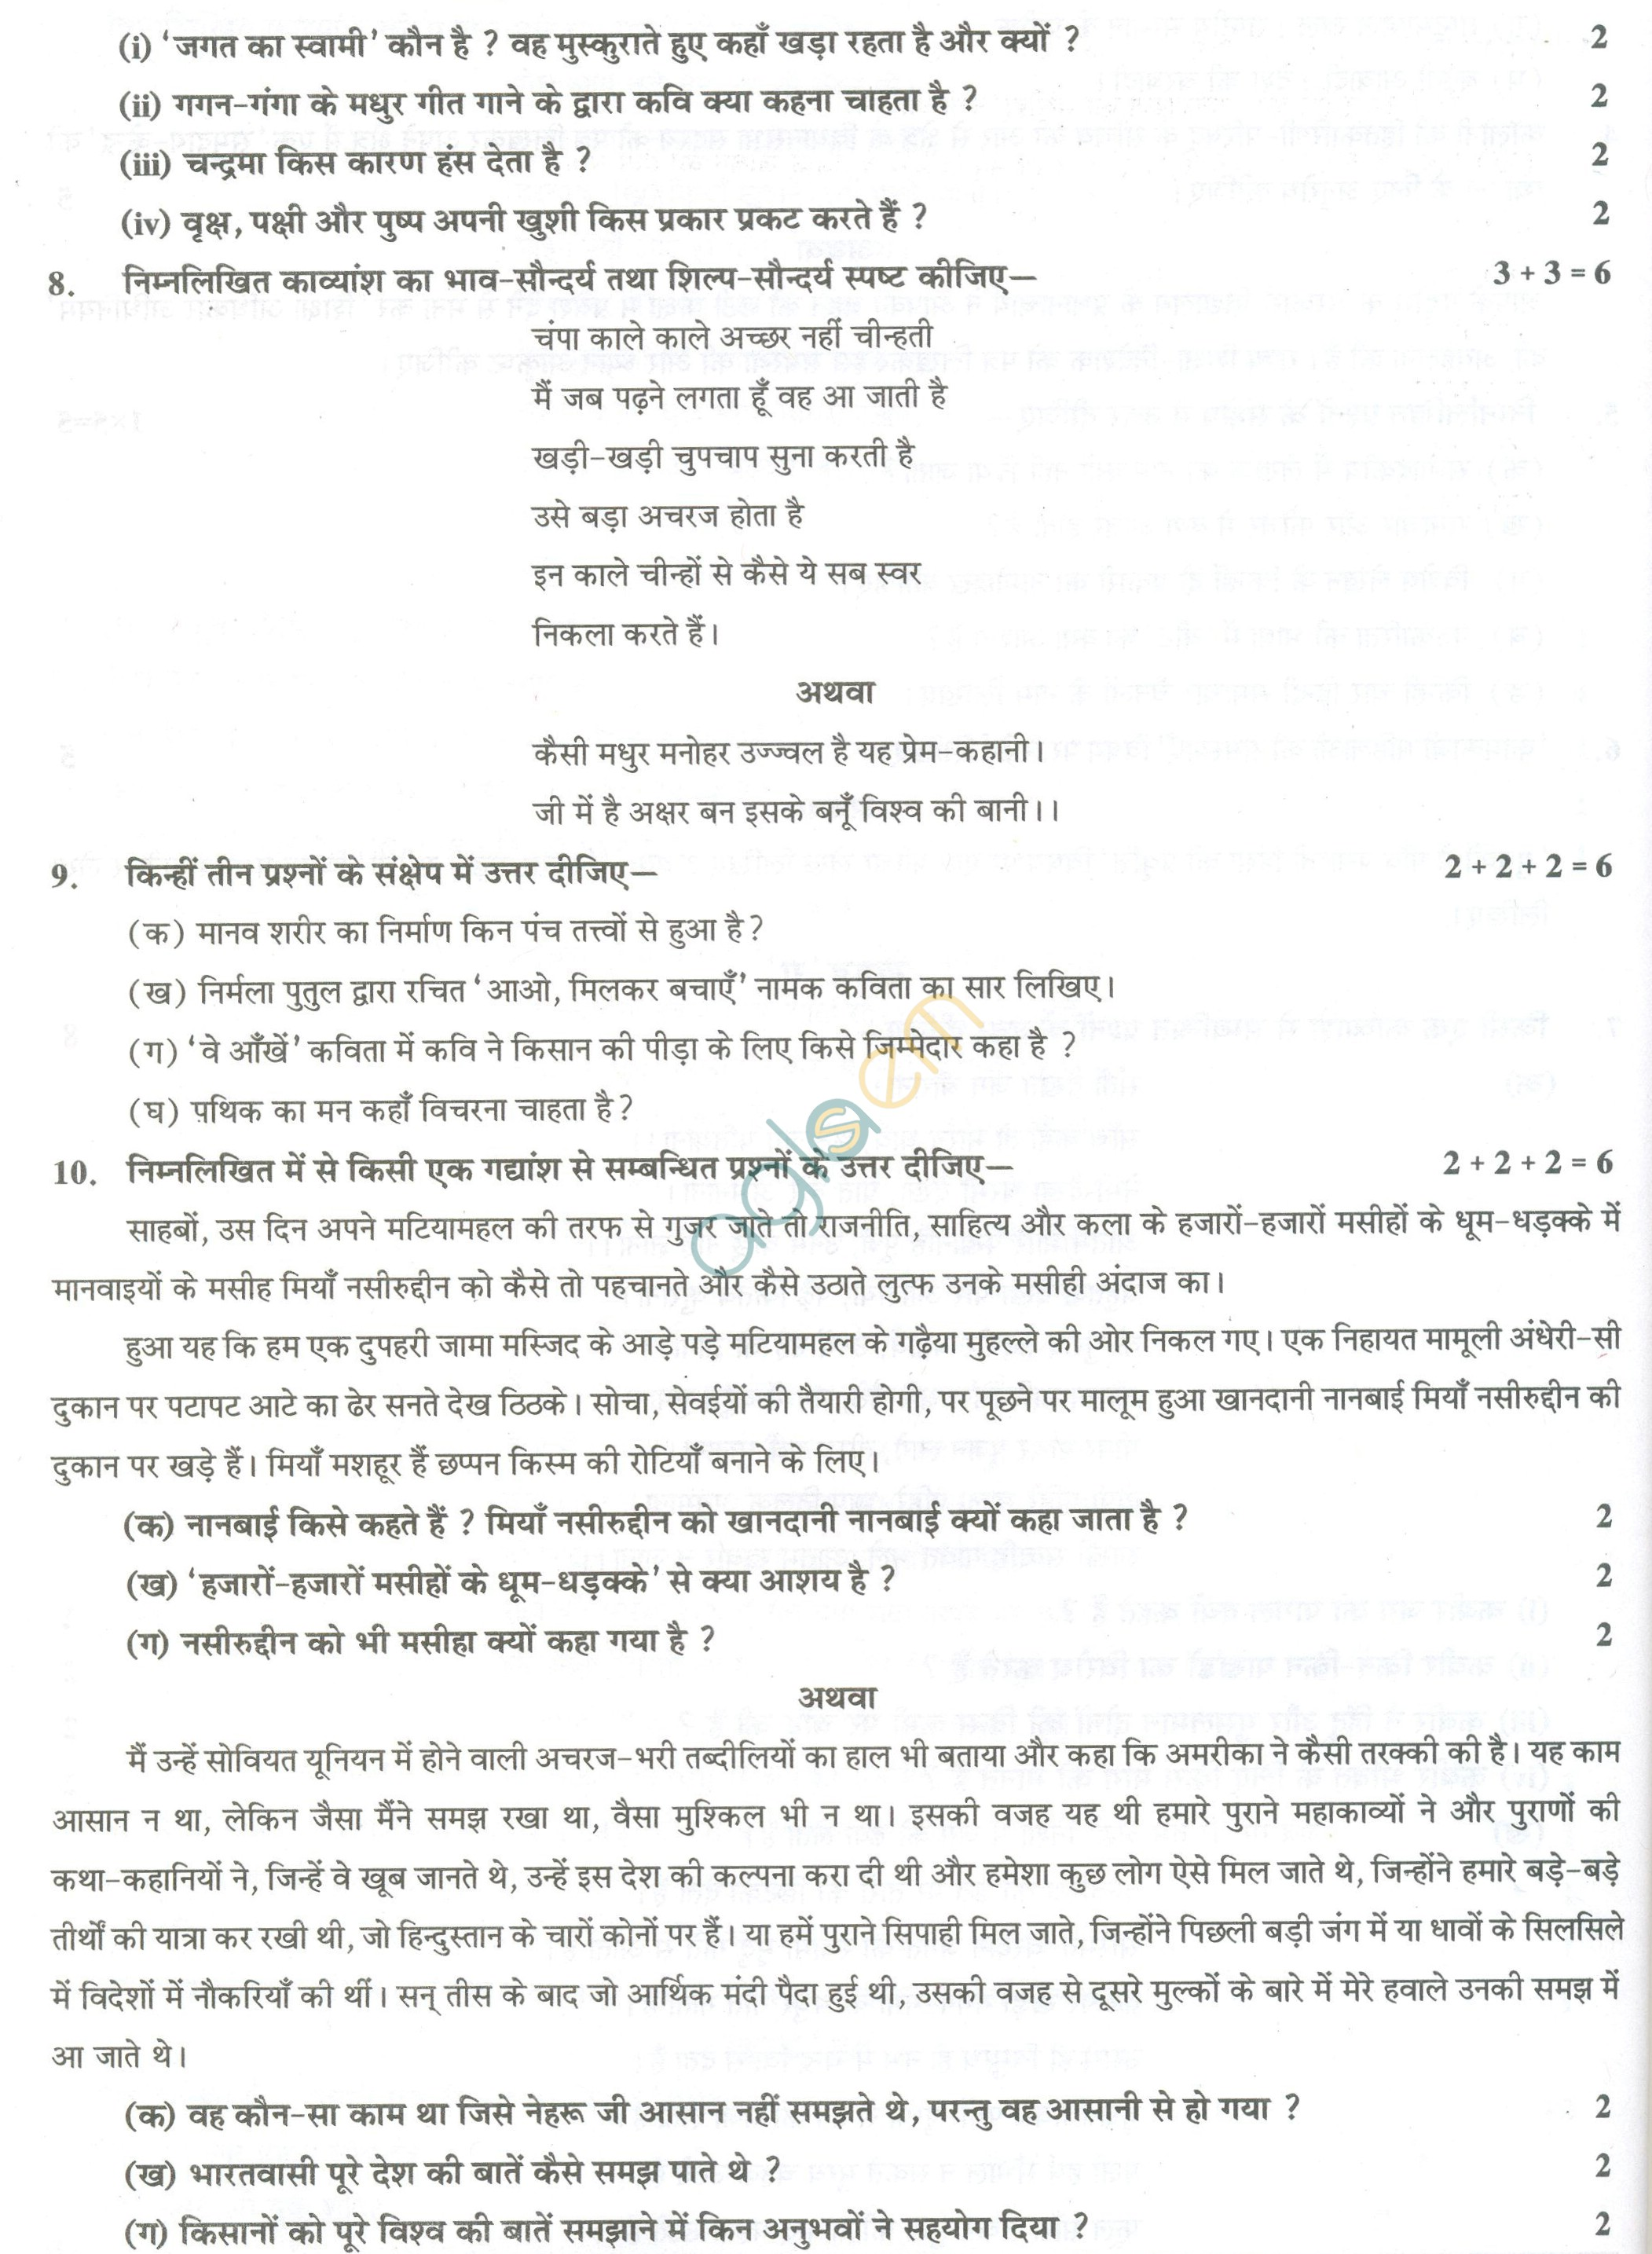 CBSE Sample Papers for Class 11 Hindi (Solved) - Set A